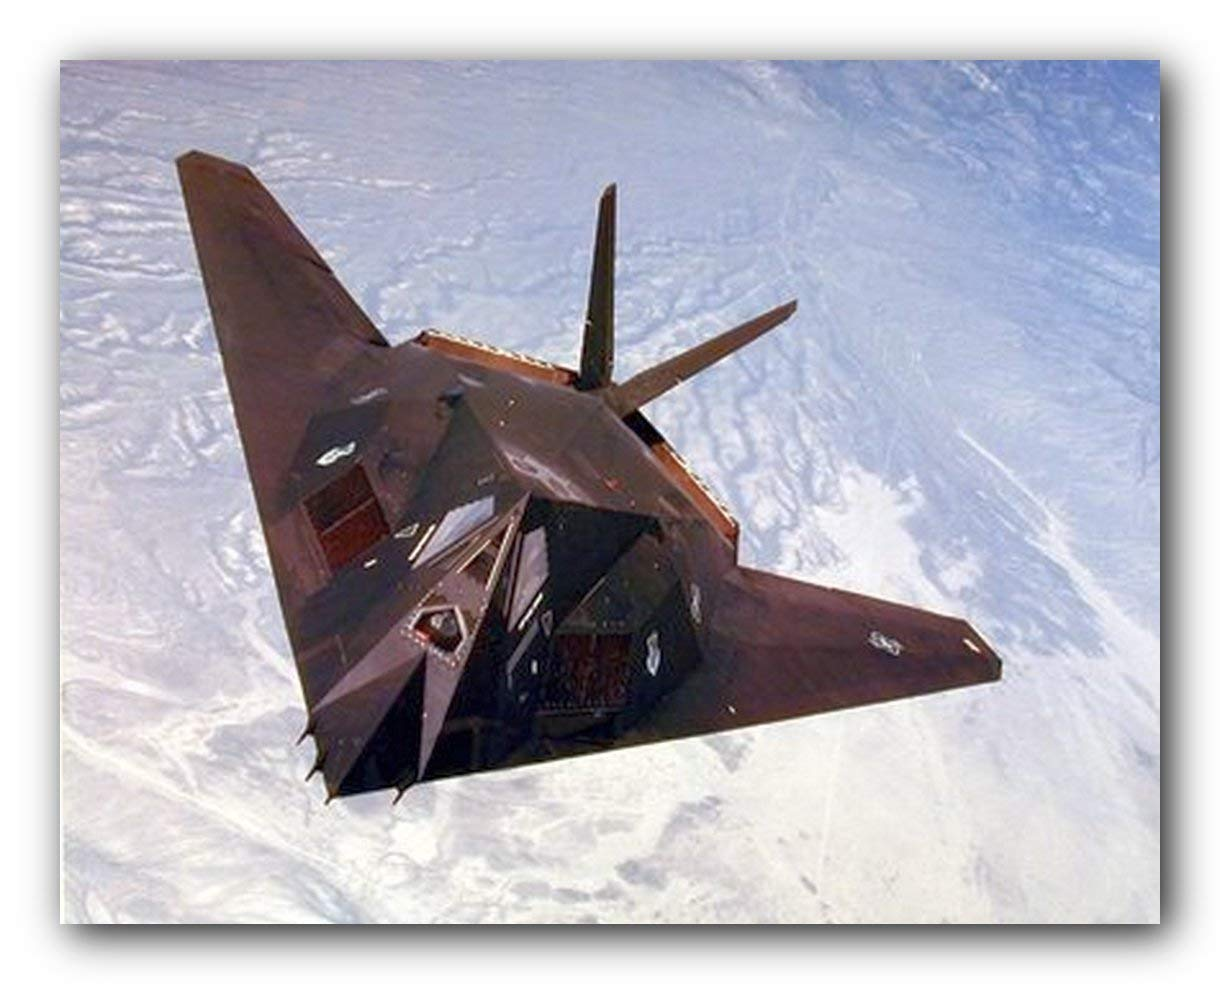 Wall Decor USAF F-117A Stealth Fighter Jet Aviation Aircraft Art Poster 16x20